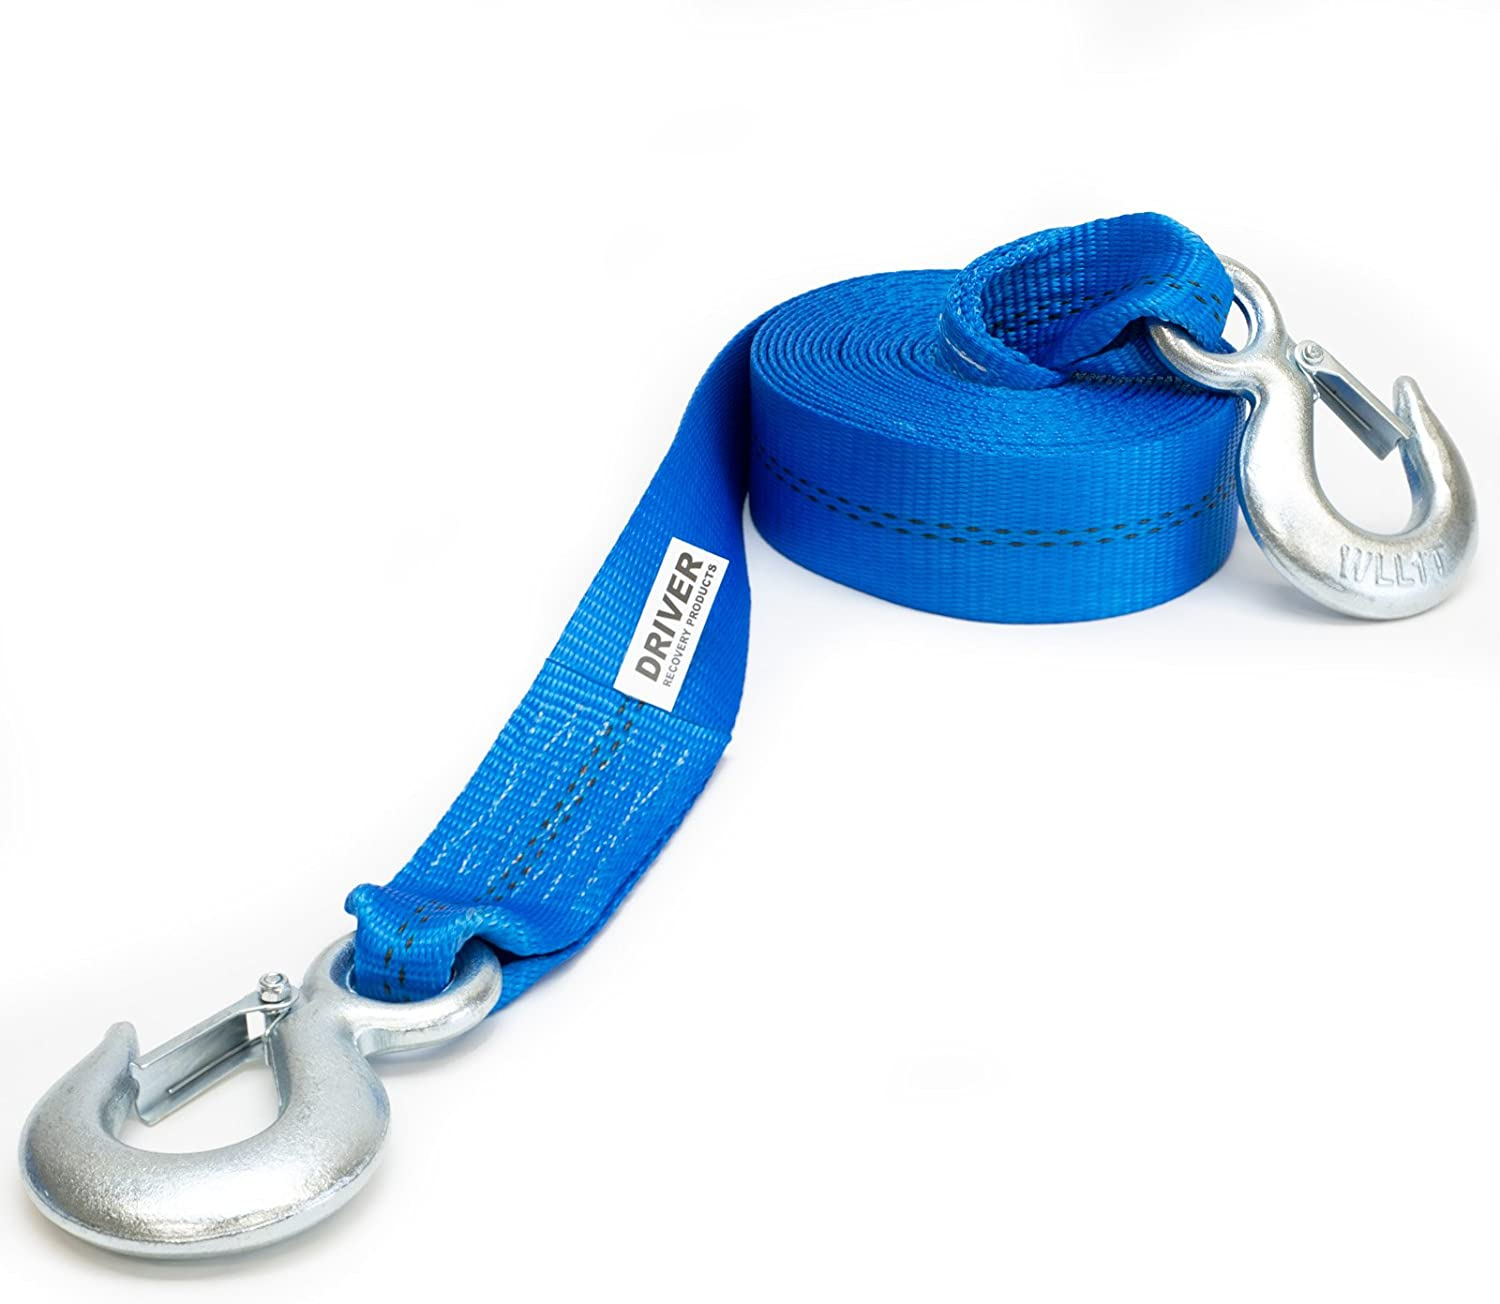 Driver Recovery 2 x 20/Heavy Duty Tow Strap with Safety Hooks 10,000 Pound Pulling Power for Emergency Recovery Winch Towing